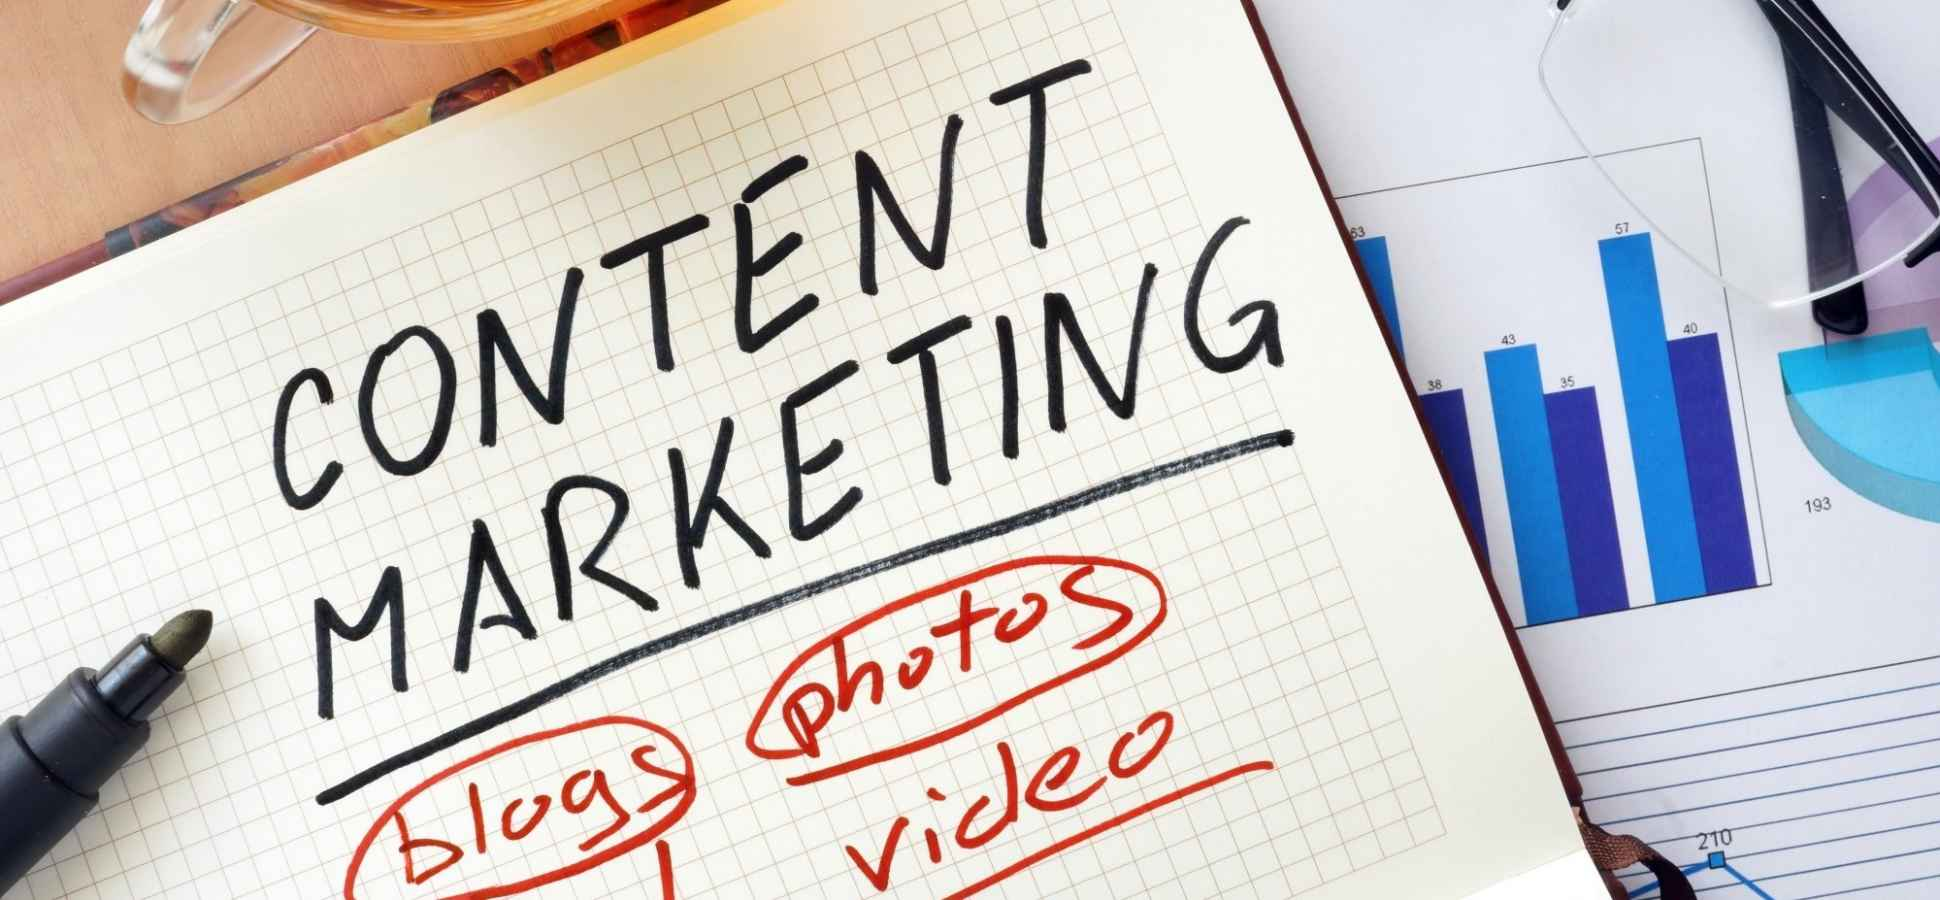 6 Content Marketing Lessons for Beginners